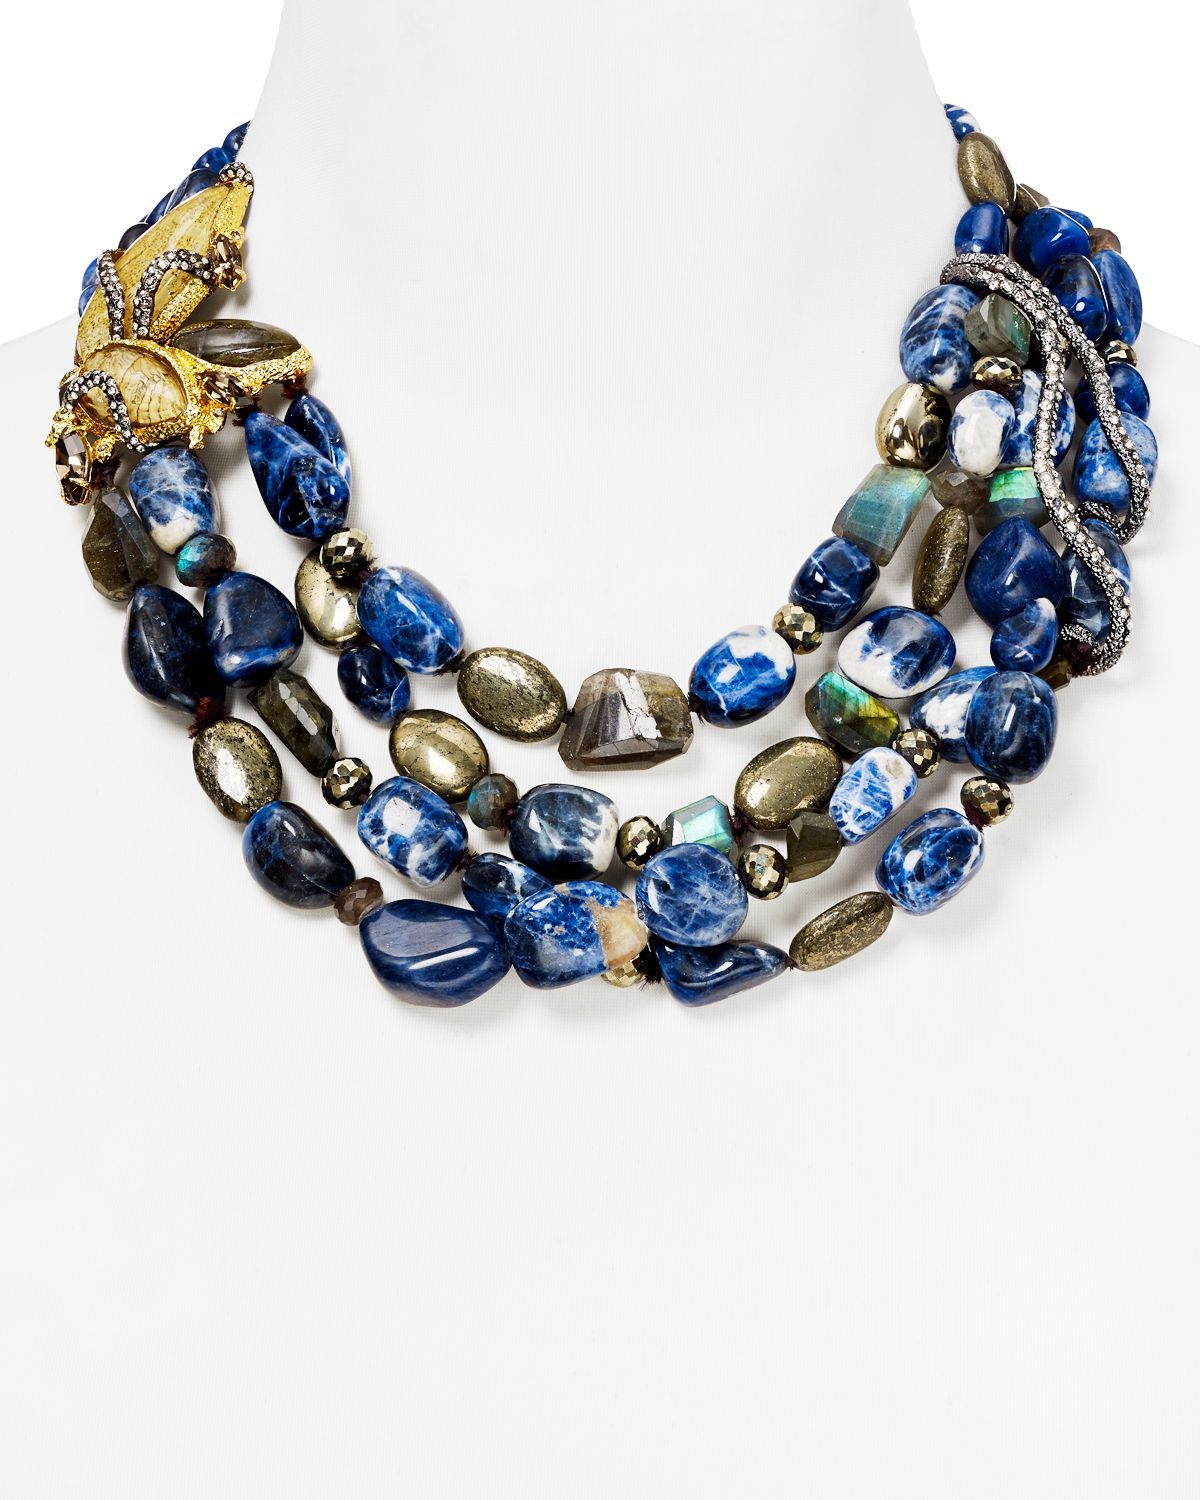 alexis crystal shop rent by for bittar the mosaic encrusted necklace pendant designers runway